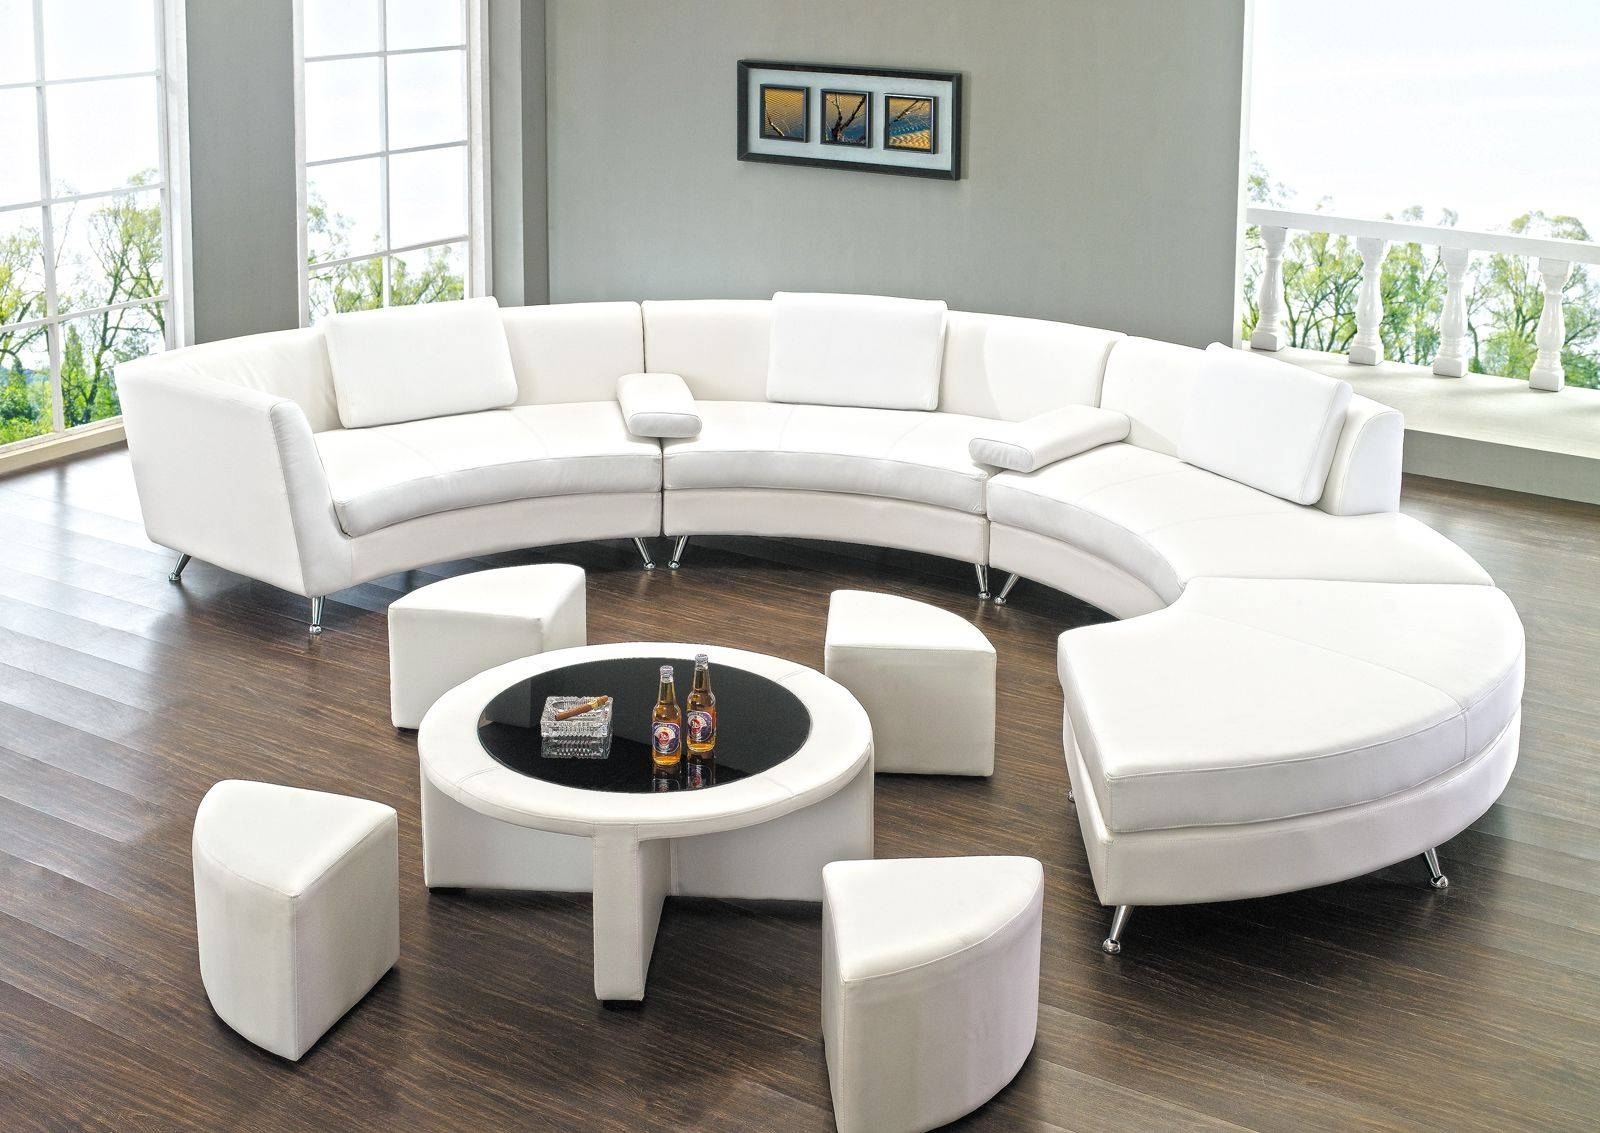 Round Sectional Sofa | Tehranmix Decoration within Circular Sectional Sofa (Image 24 of 30)